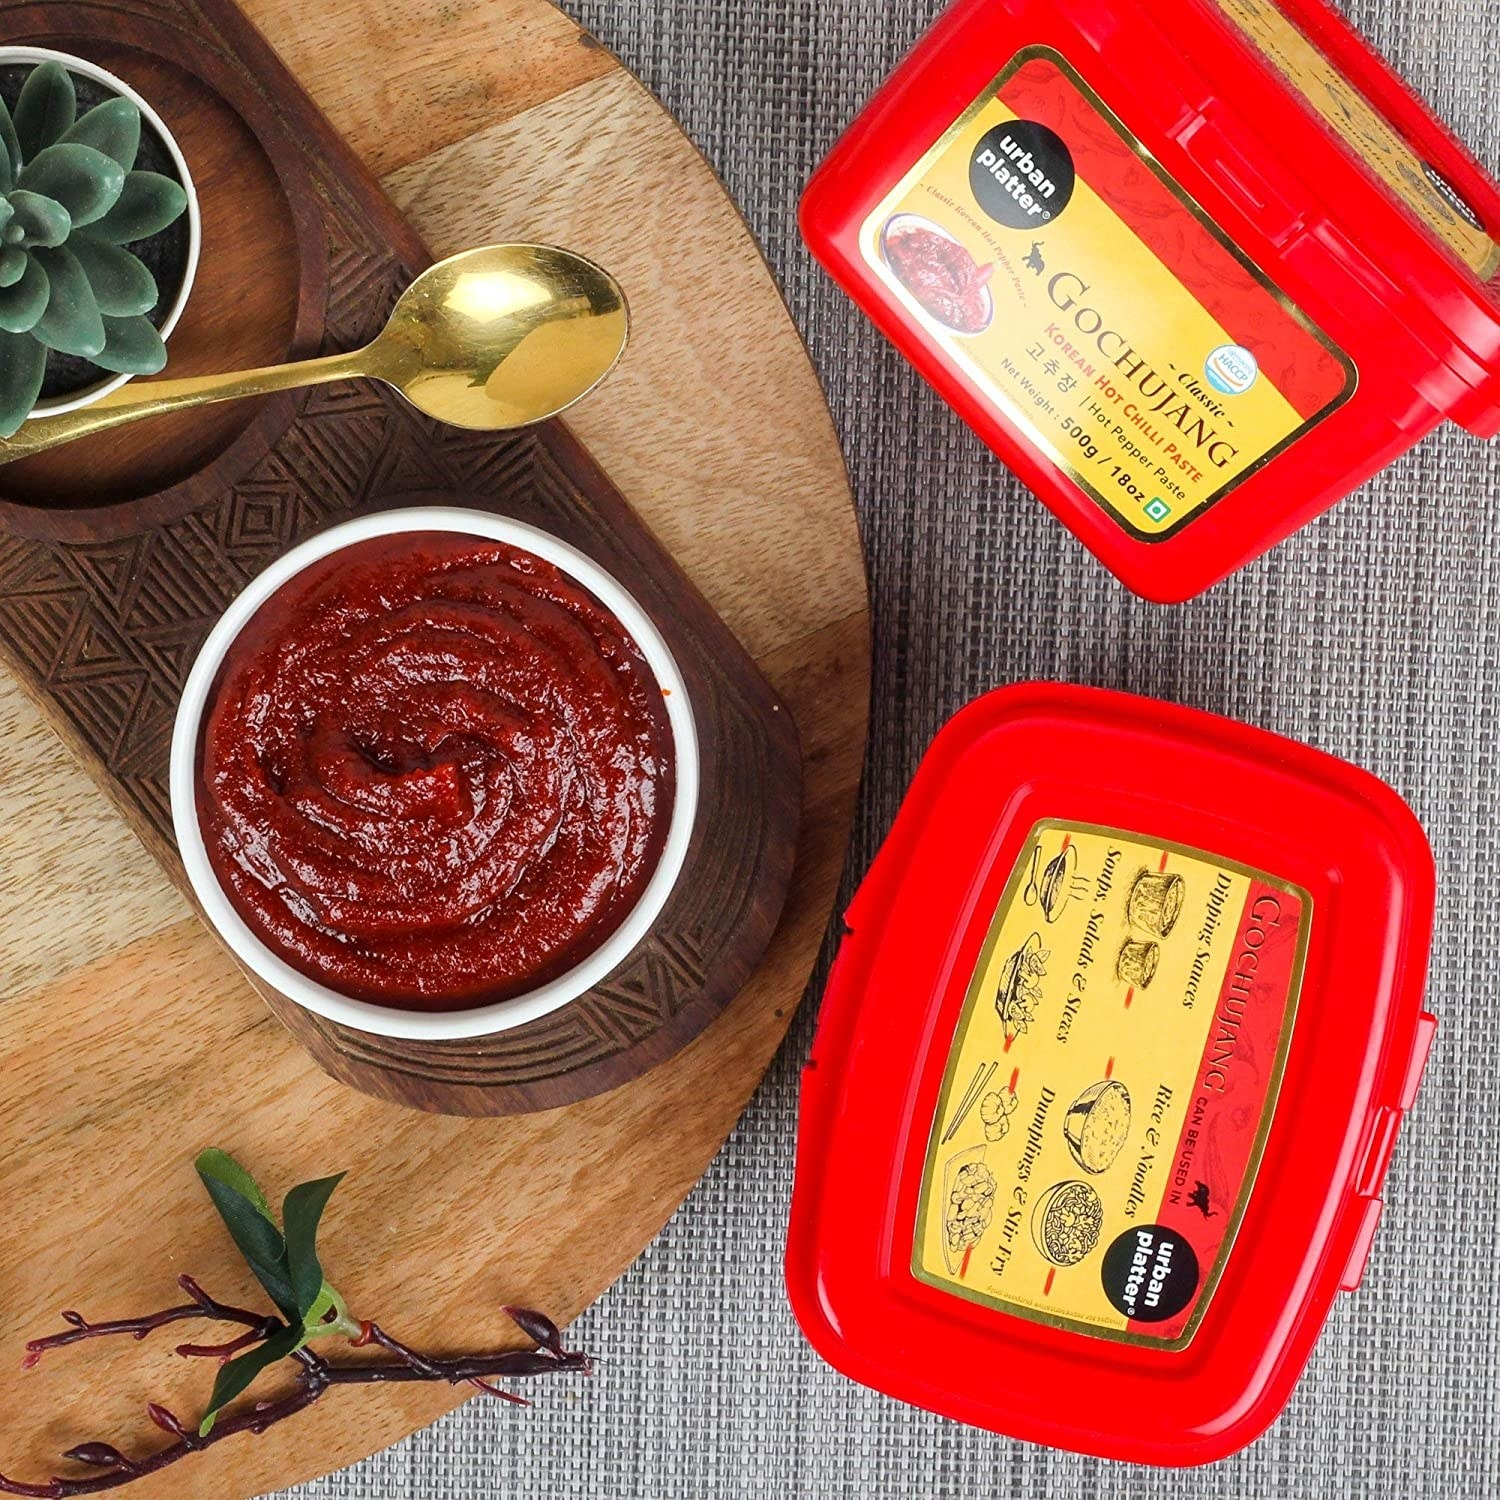 Two boxes of 500gm red gochujang paste kept alongside the sauce in a dipping bowl.